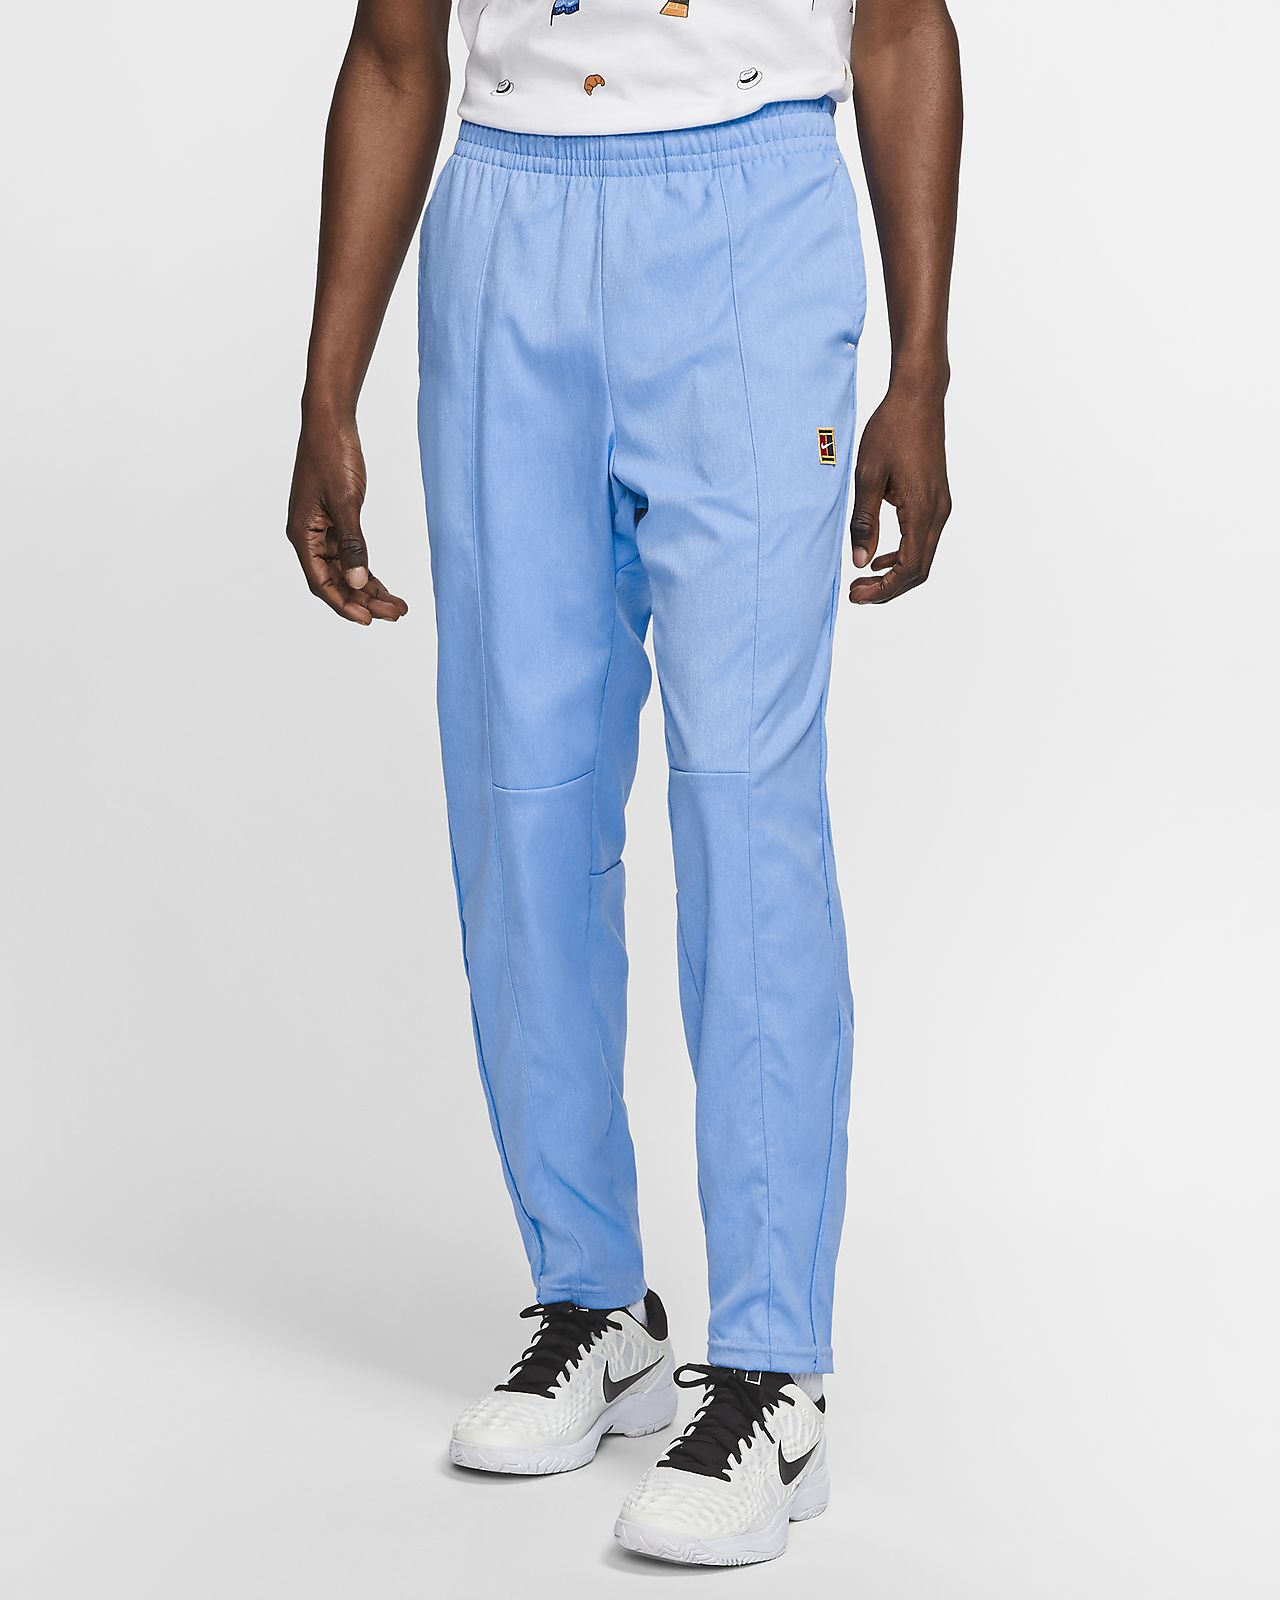 NikeCourt Men's Tennis Trousers